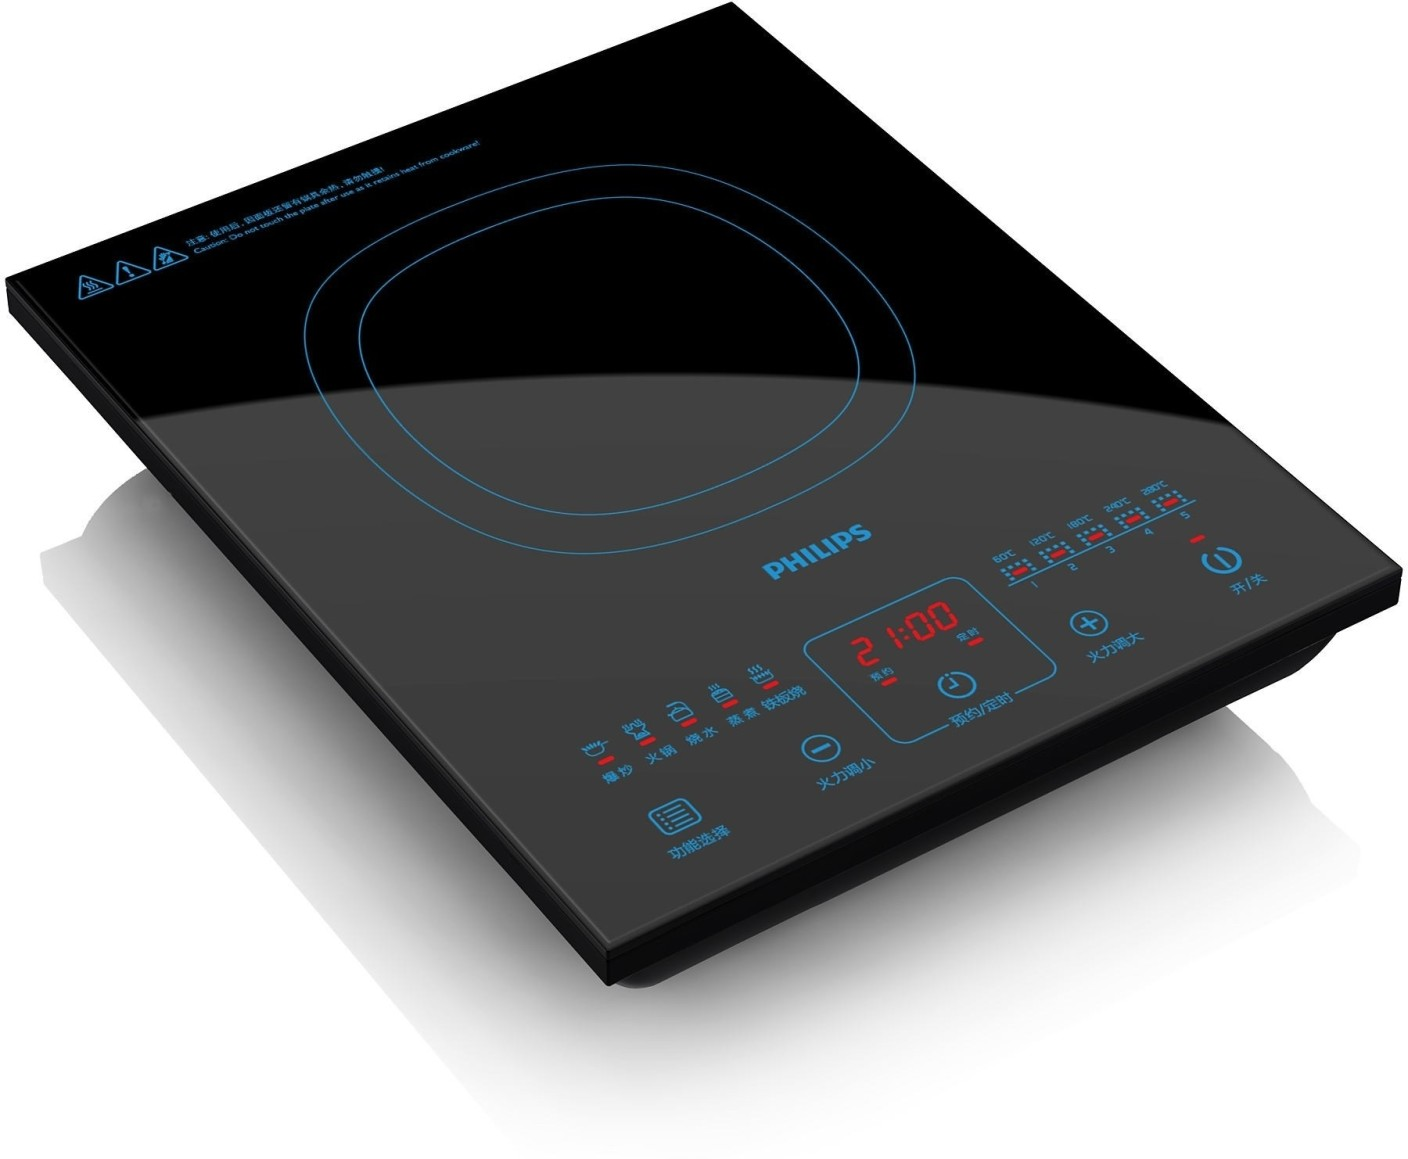 Philips HD 4911 Induction Cooktop